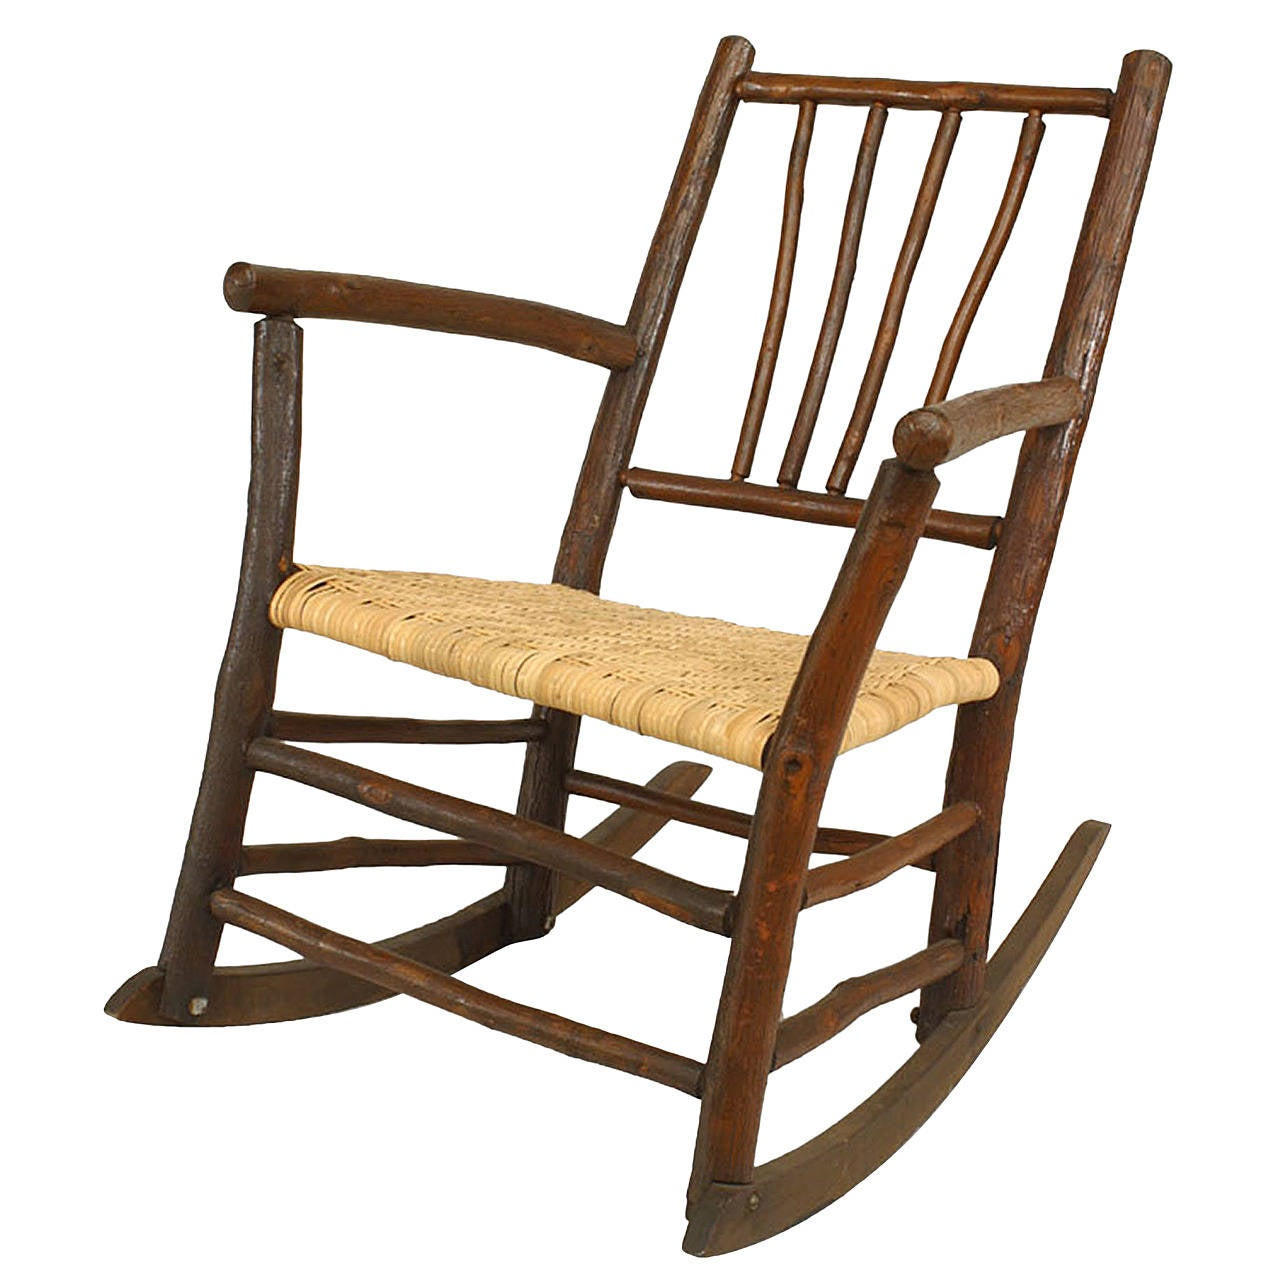 early 20th century american rustic old hickory rocking chair for sale at 1stdibs. Black Bedroom Furniture Sets. Home Design Ideas